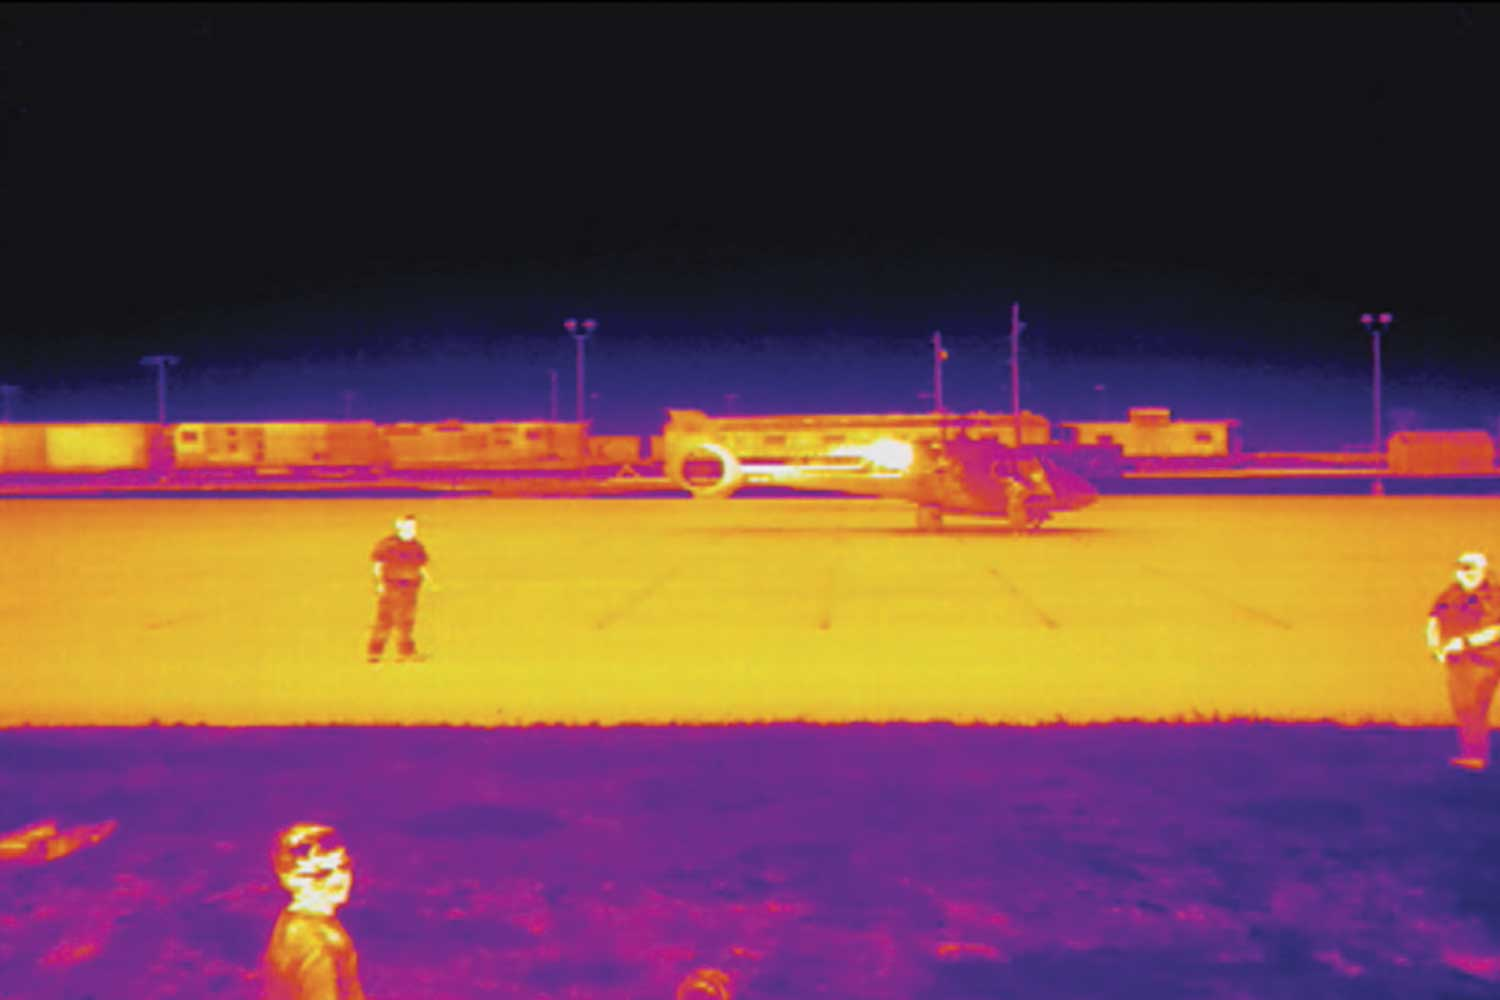 GPD's drone allows officers options, such as thermal imaging, to broaden the visibility beyond the human eye in investigations. (Photo provided)